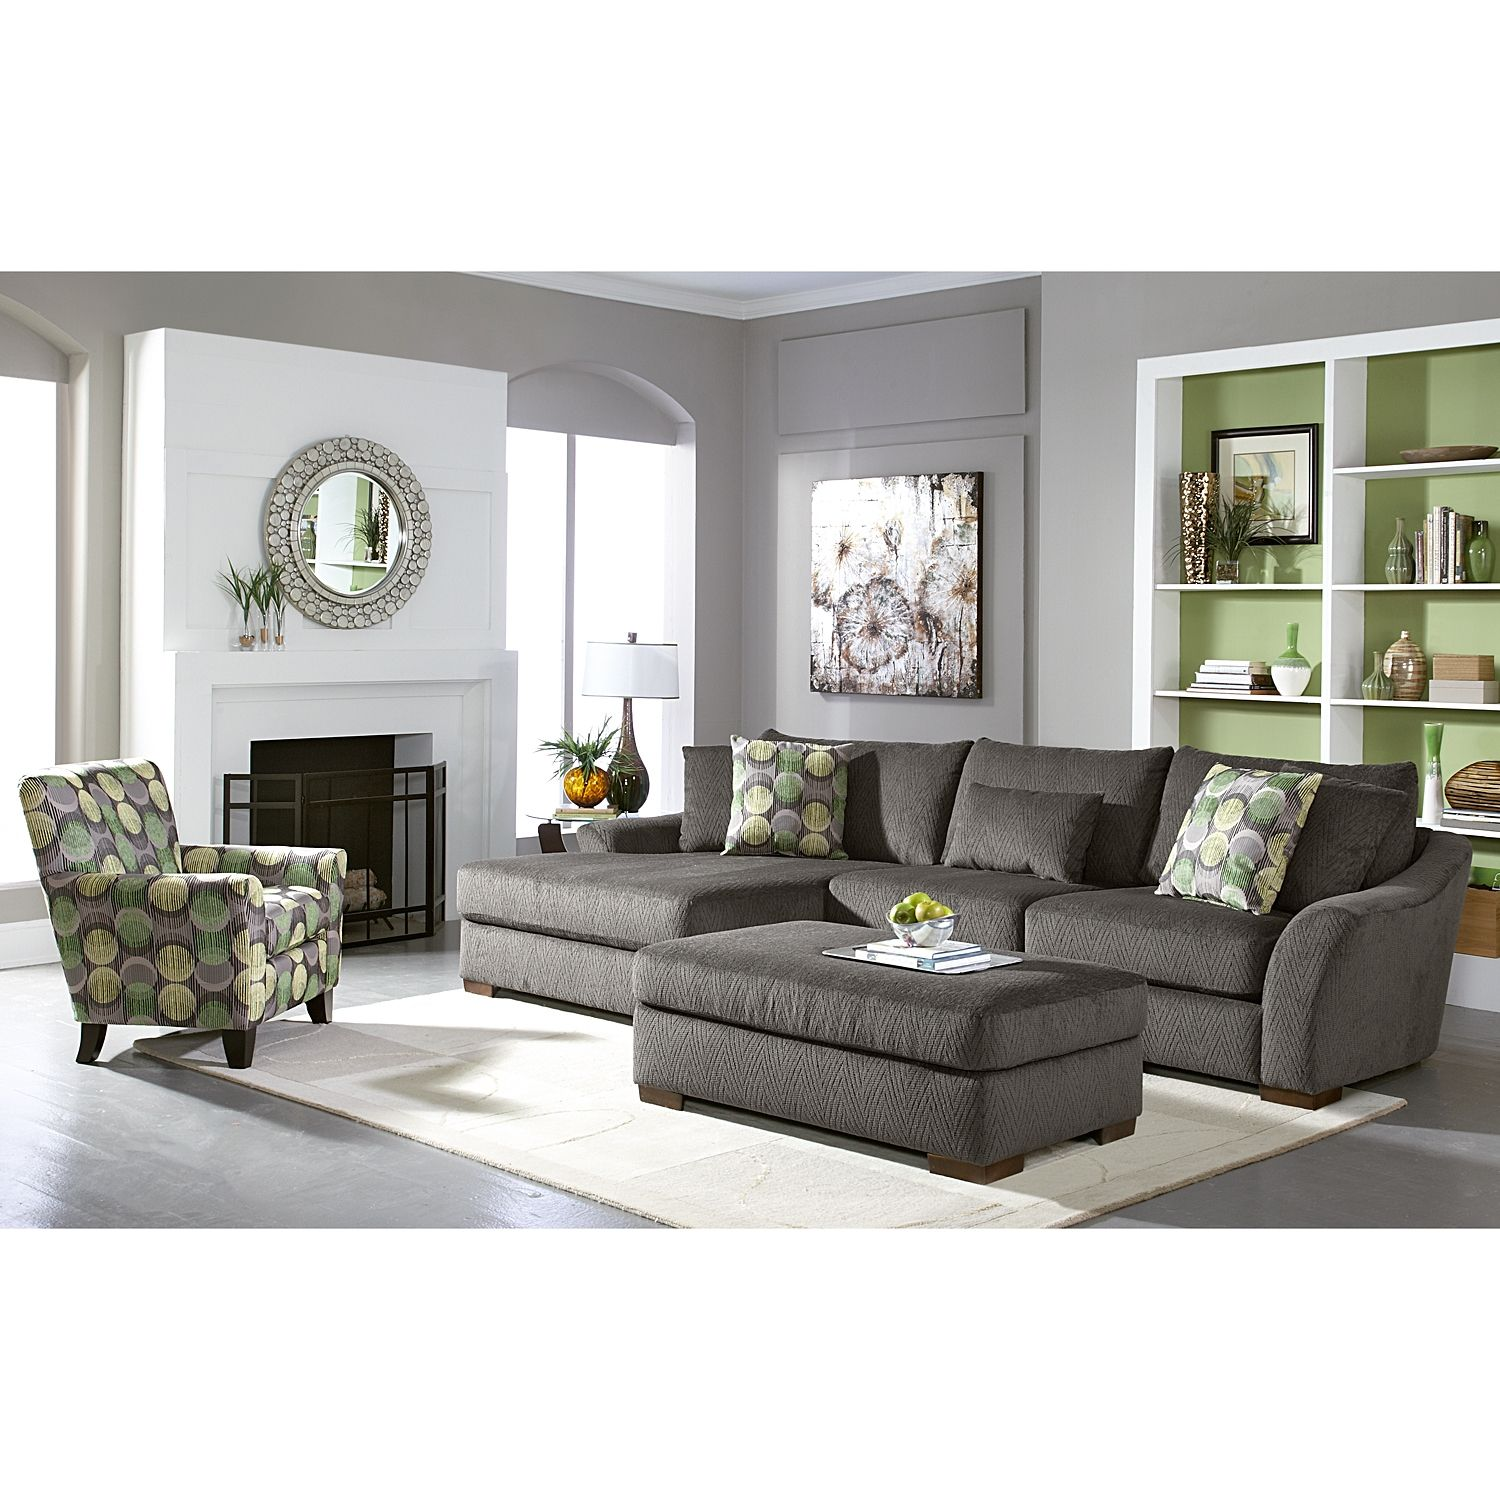 Pictures Of Grey Living Rooms Living Room Furniture Orleans Gray 2 Pc Sectional La